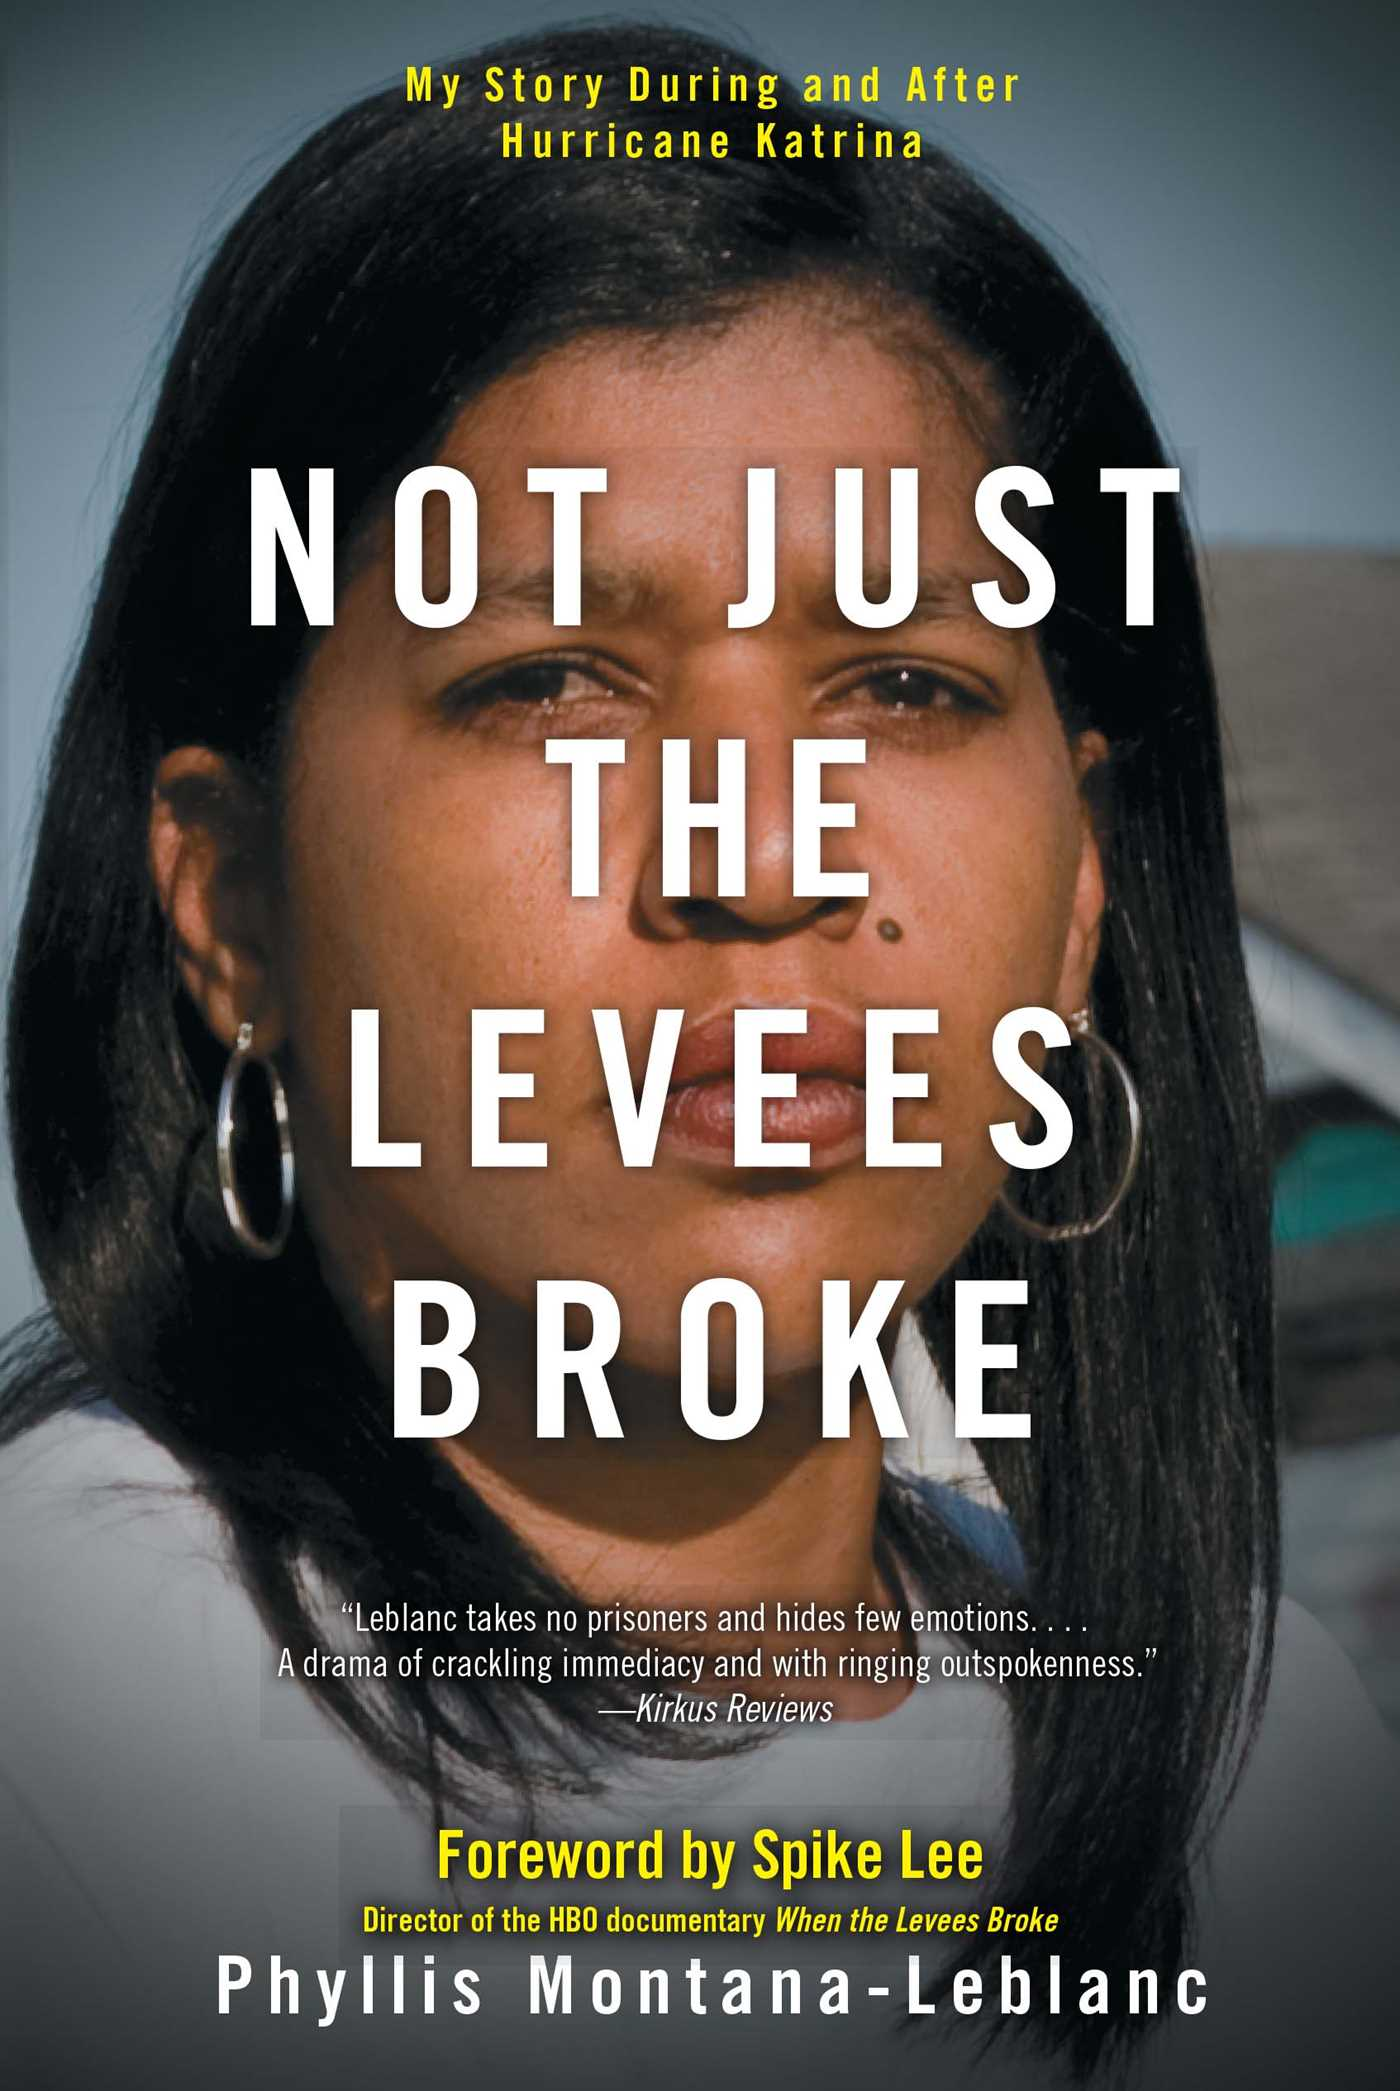 Not-just-the-levees-broke-9781416566182_hr